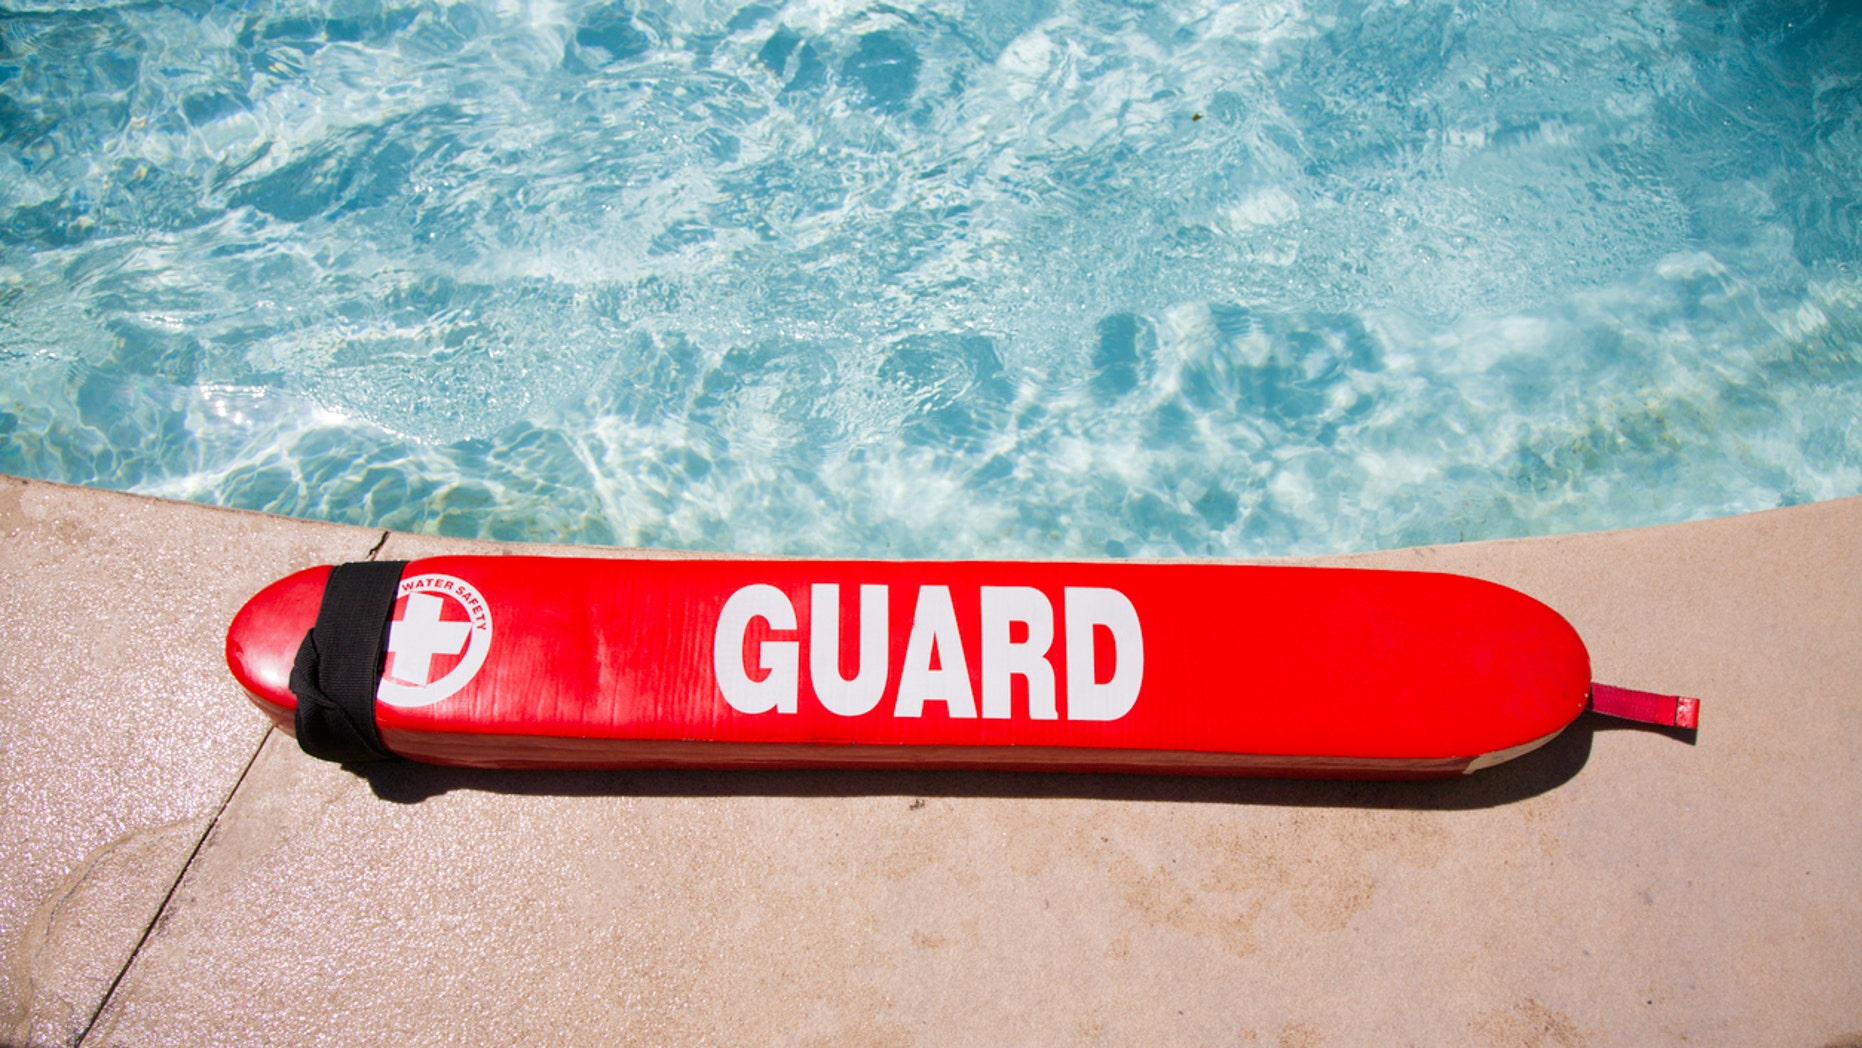 Lane VanHorn is in his second year of lifeguarding.